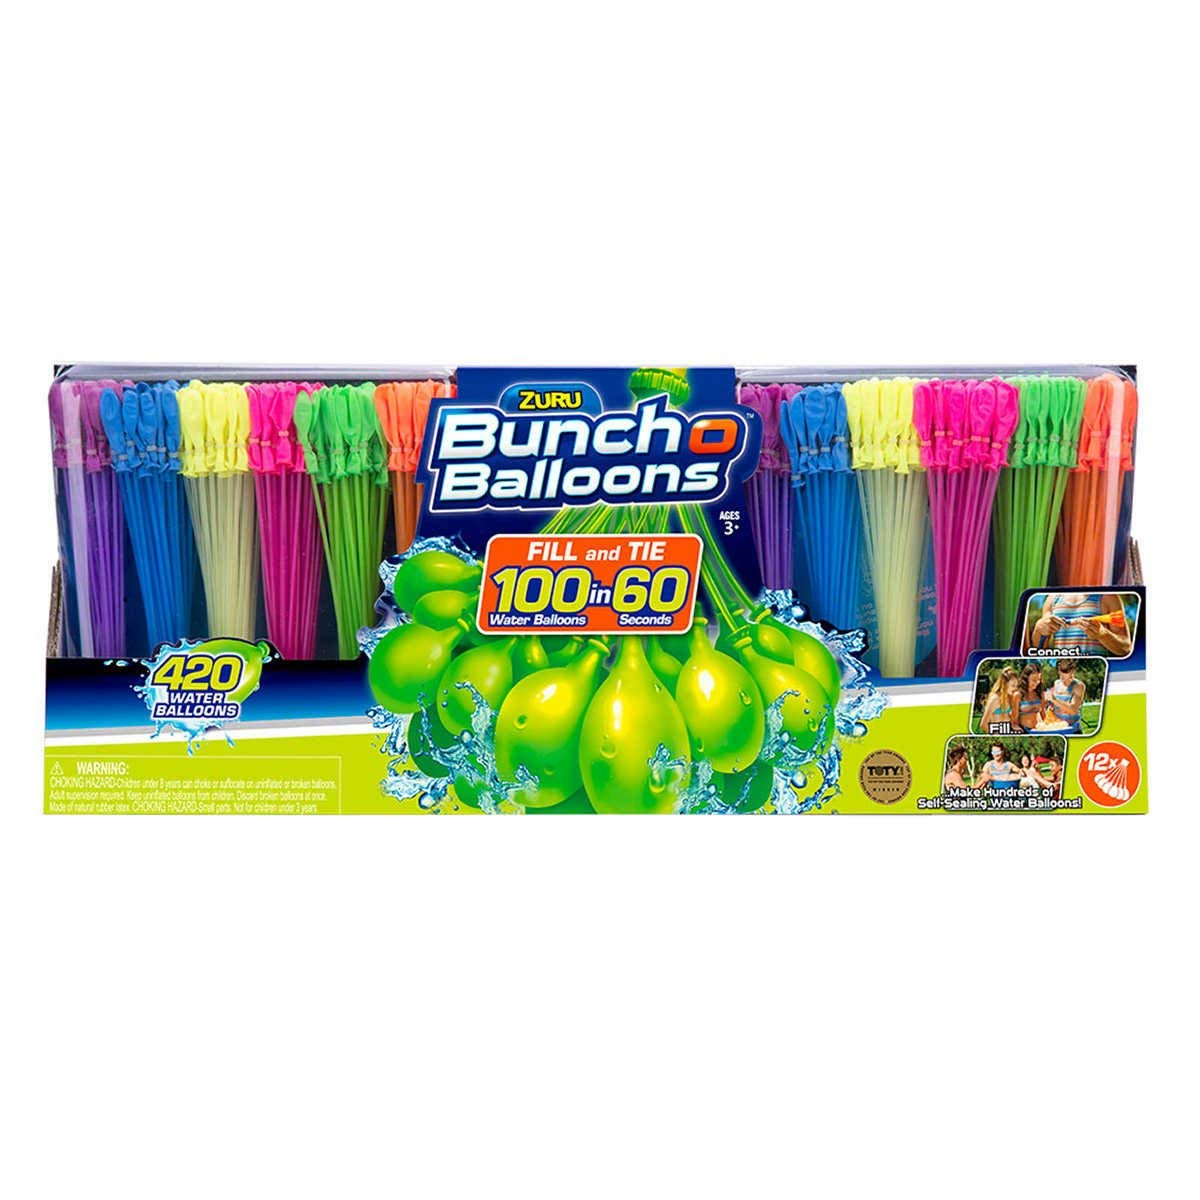 Bunch O Balloons - 420 Instant Self Sealing Water Balloons by Bunch O Balloons